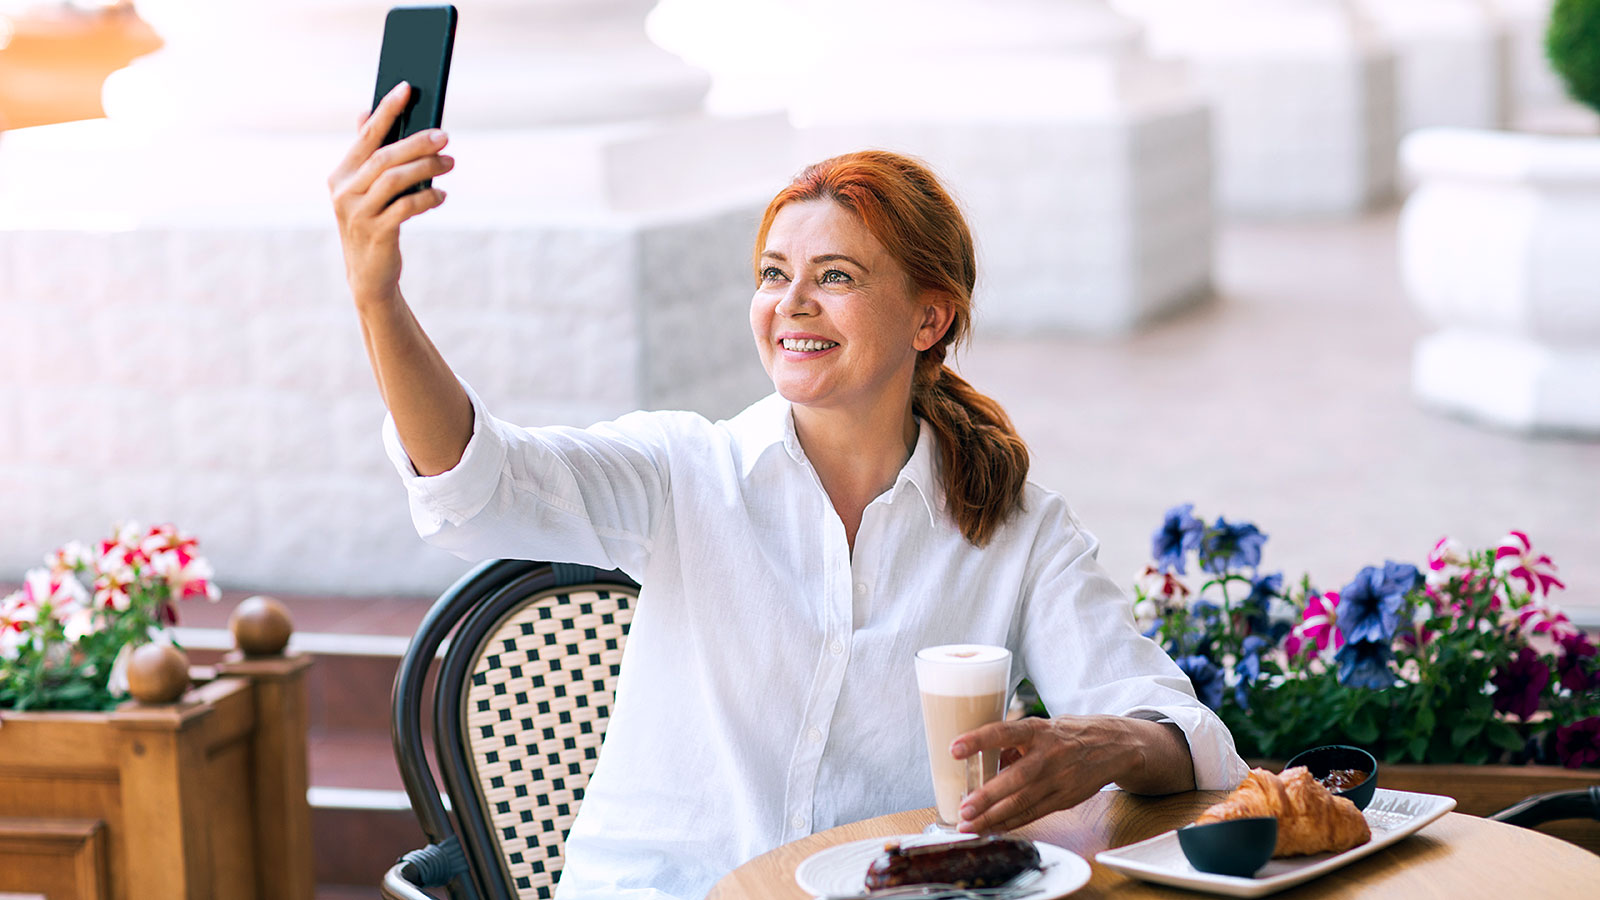 Does taking selfies make you a narcissist? This study has the answer